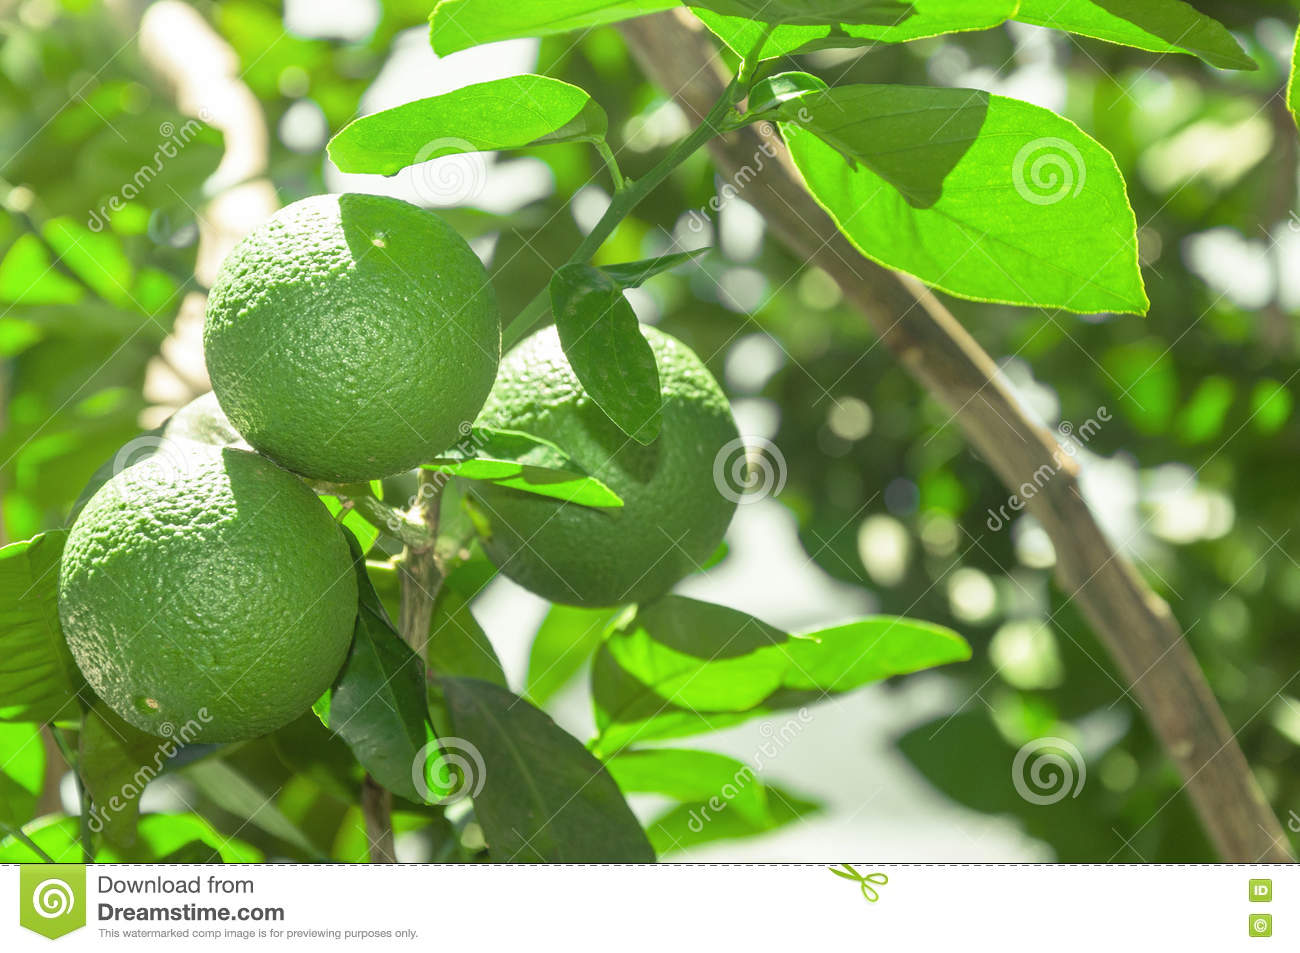 Tree with green lime fruits with leaves on the background. Organic green lemon fruit ready for harvest